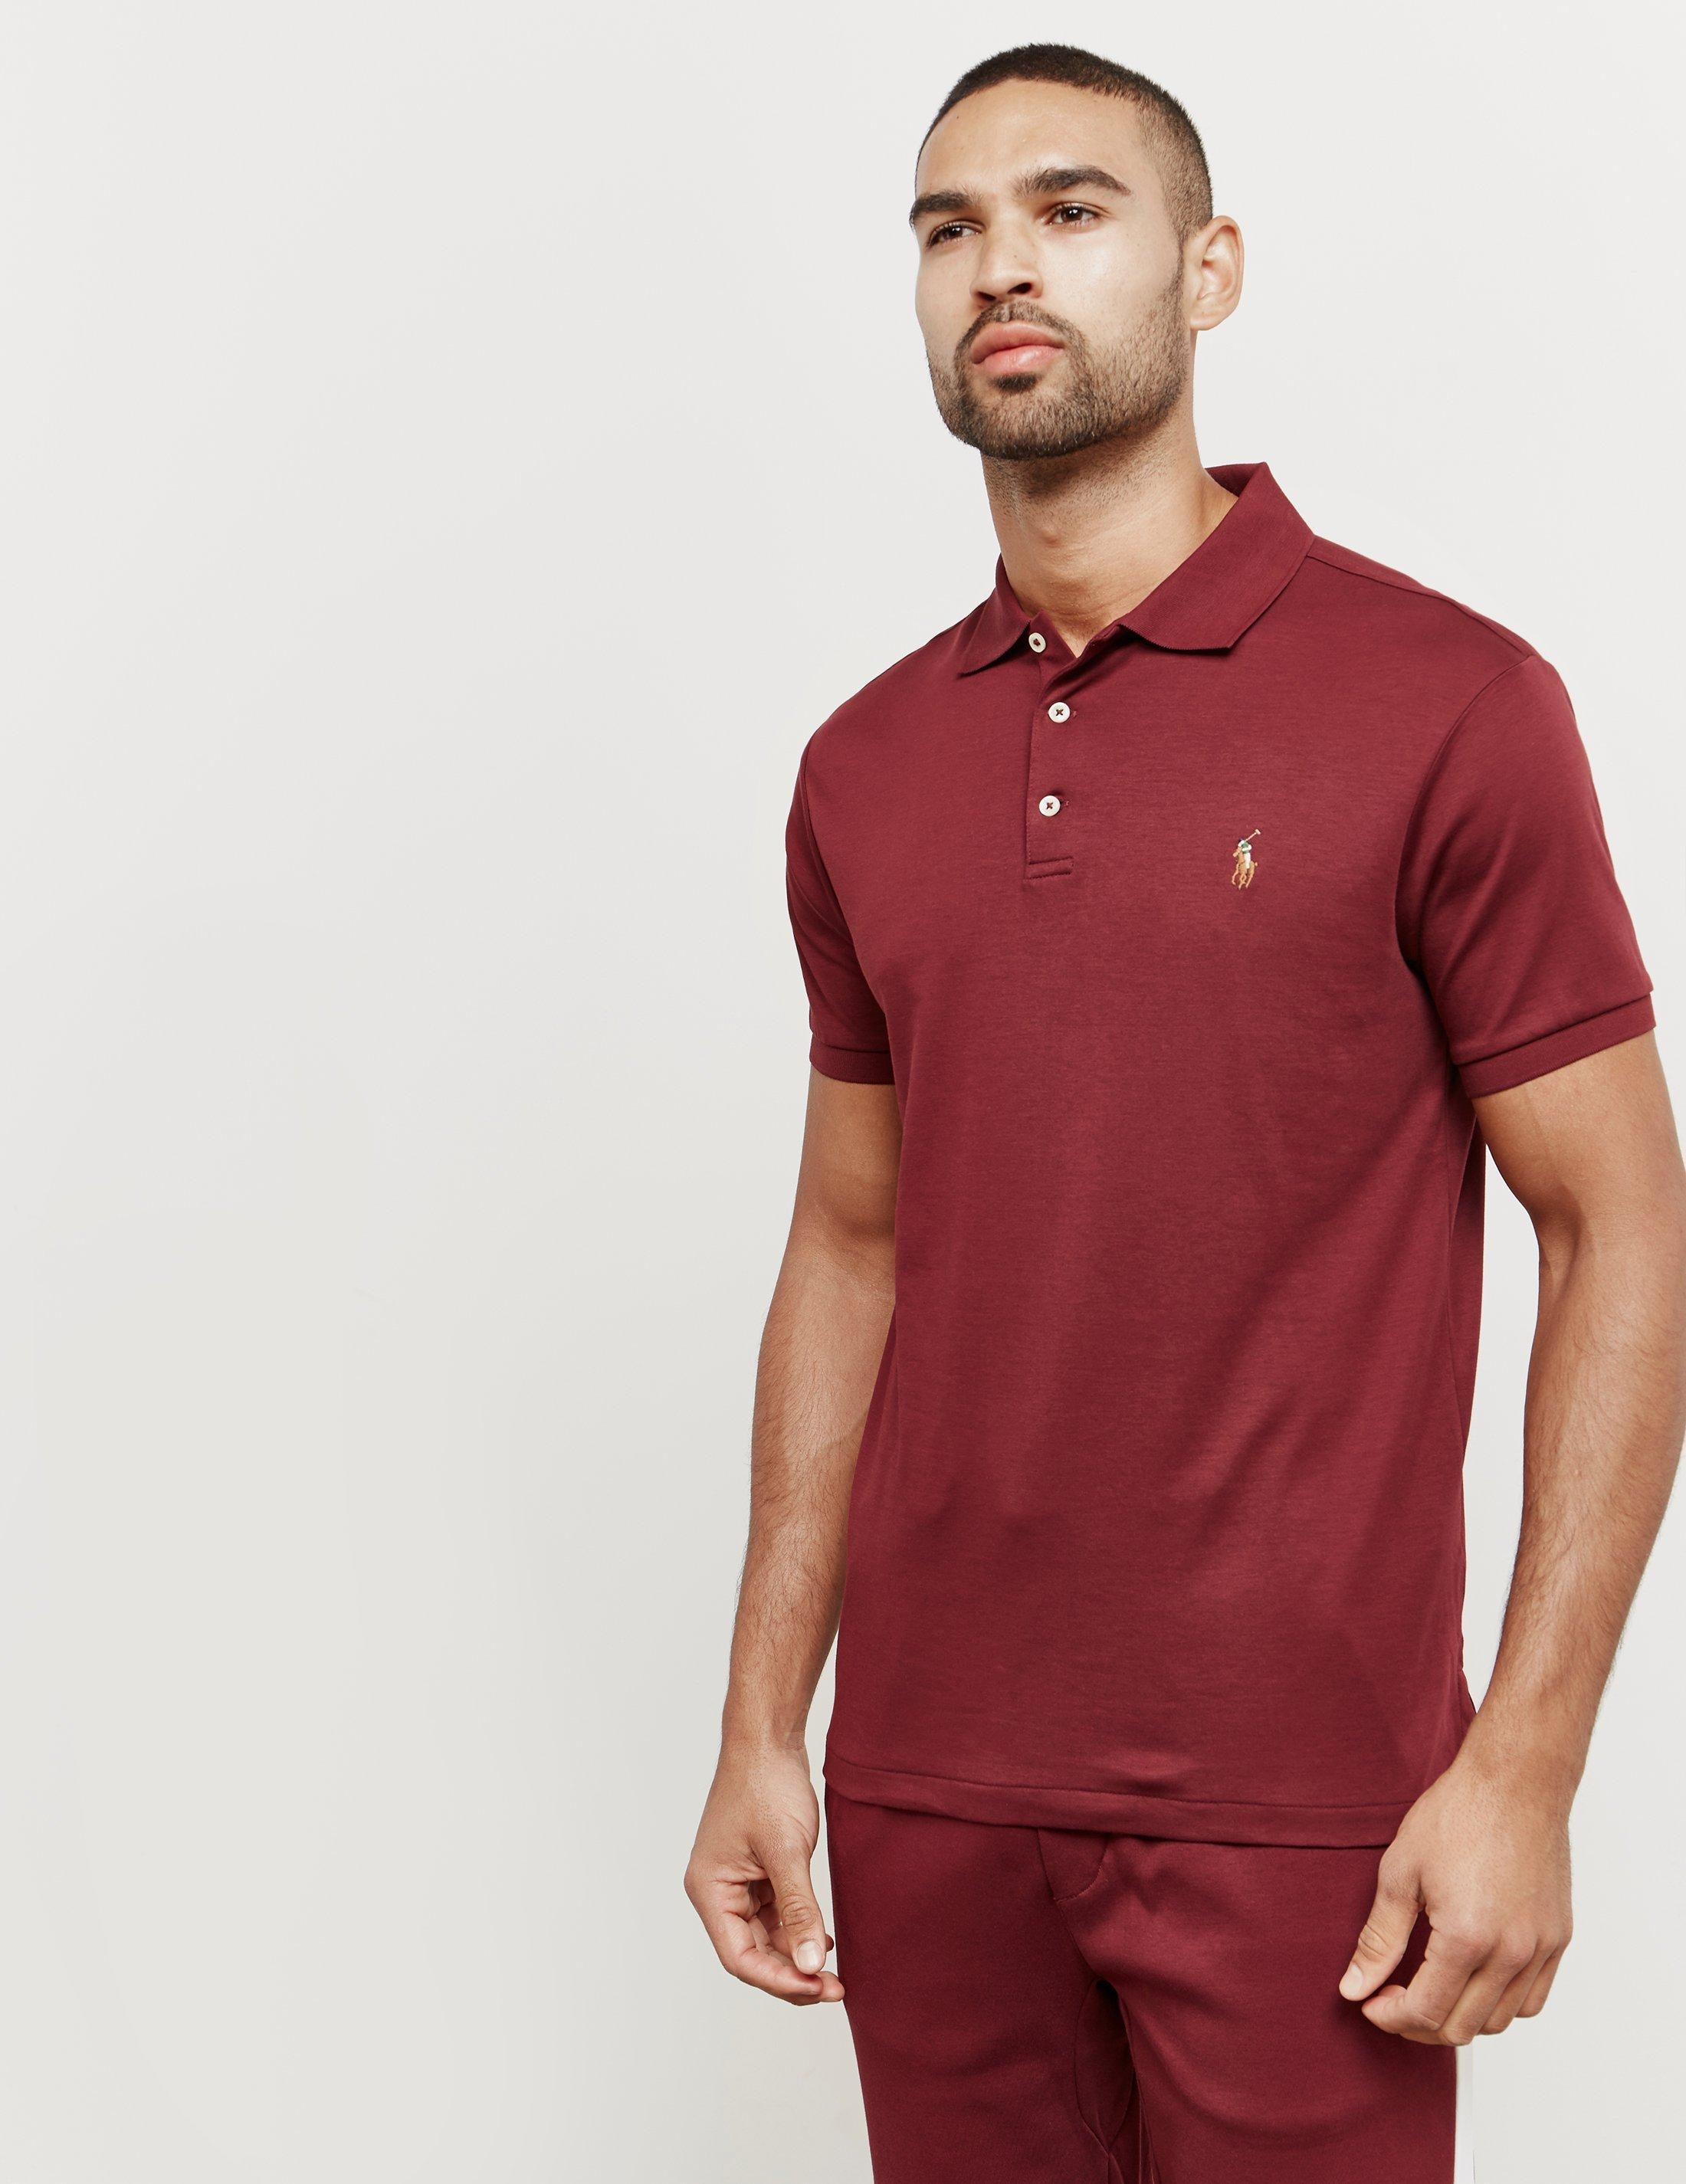 617343a5 Lyst - Polo Ralph Lauren Pima Short Sleeve Polo Shirt Red in Red for Men